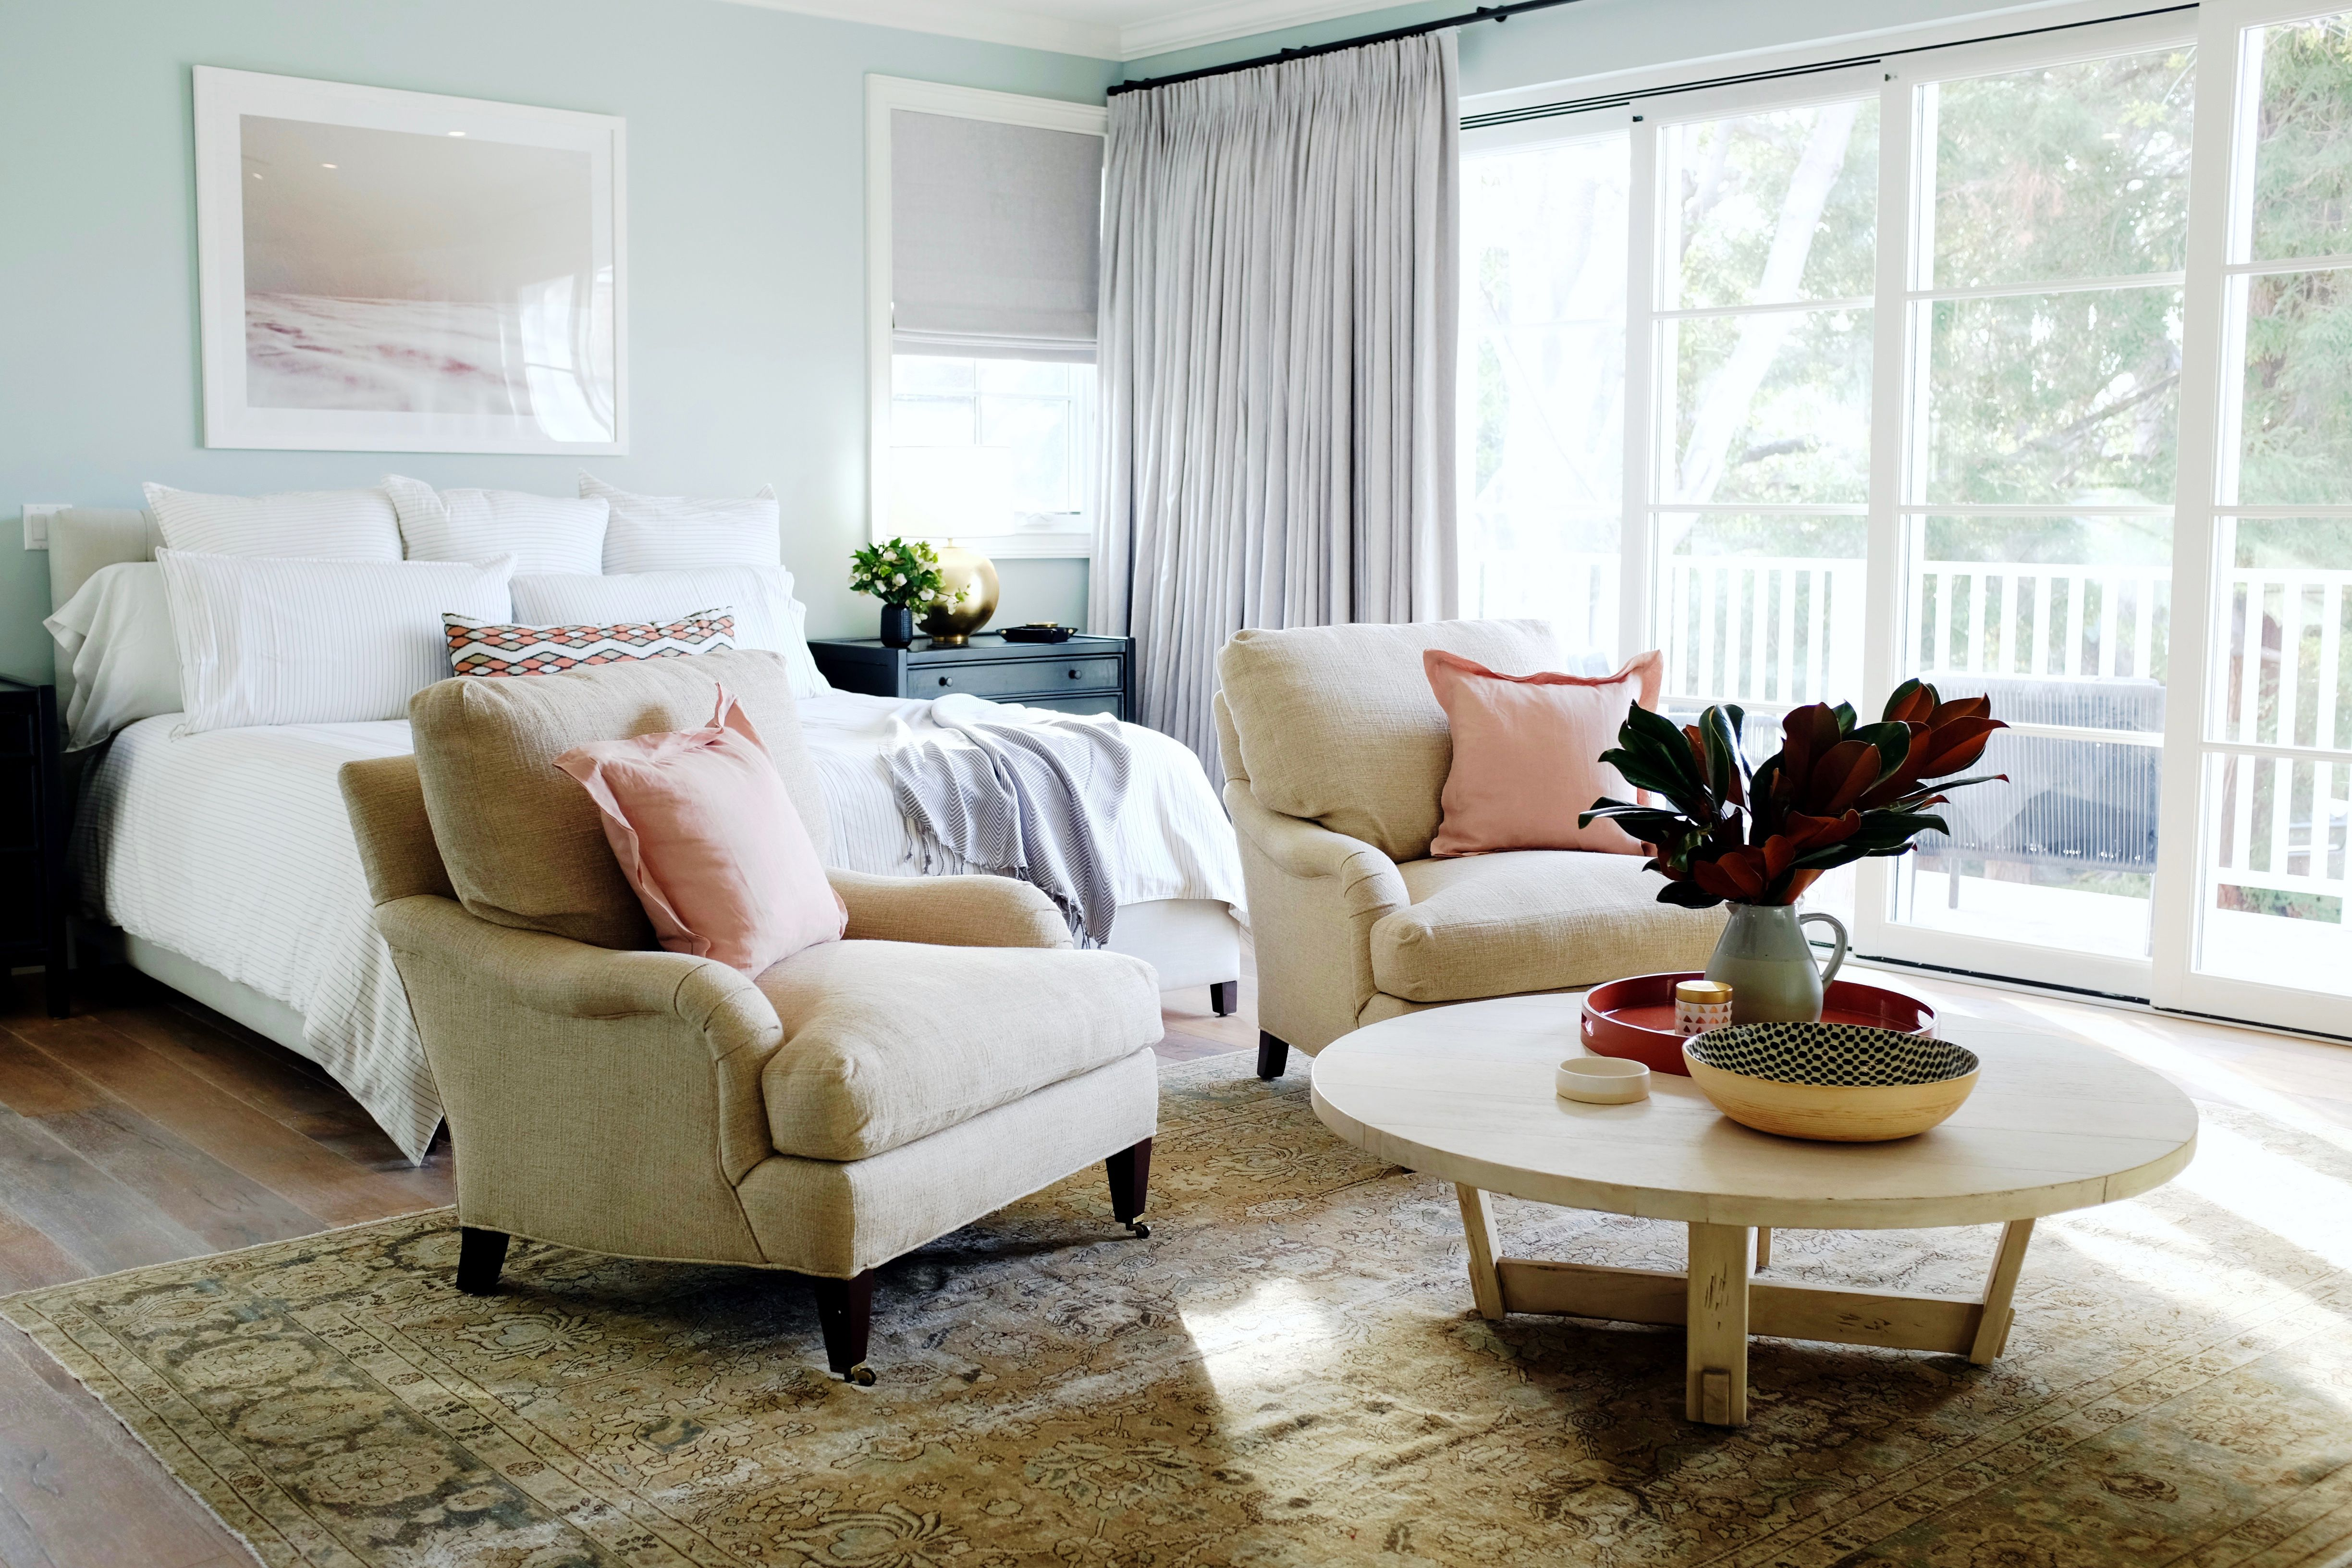 Settee End Of Bed 20 End Of Bed Design Ideas From Interior Designers End Of Bed Bench